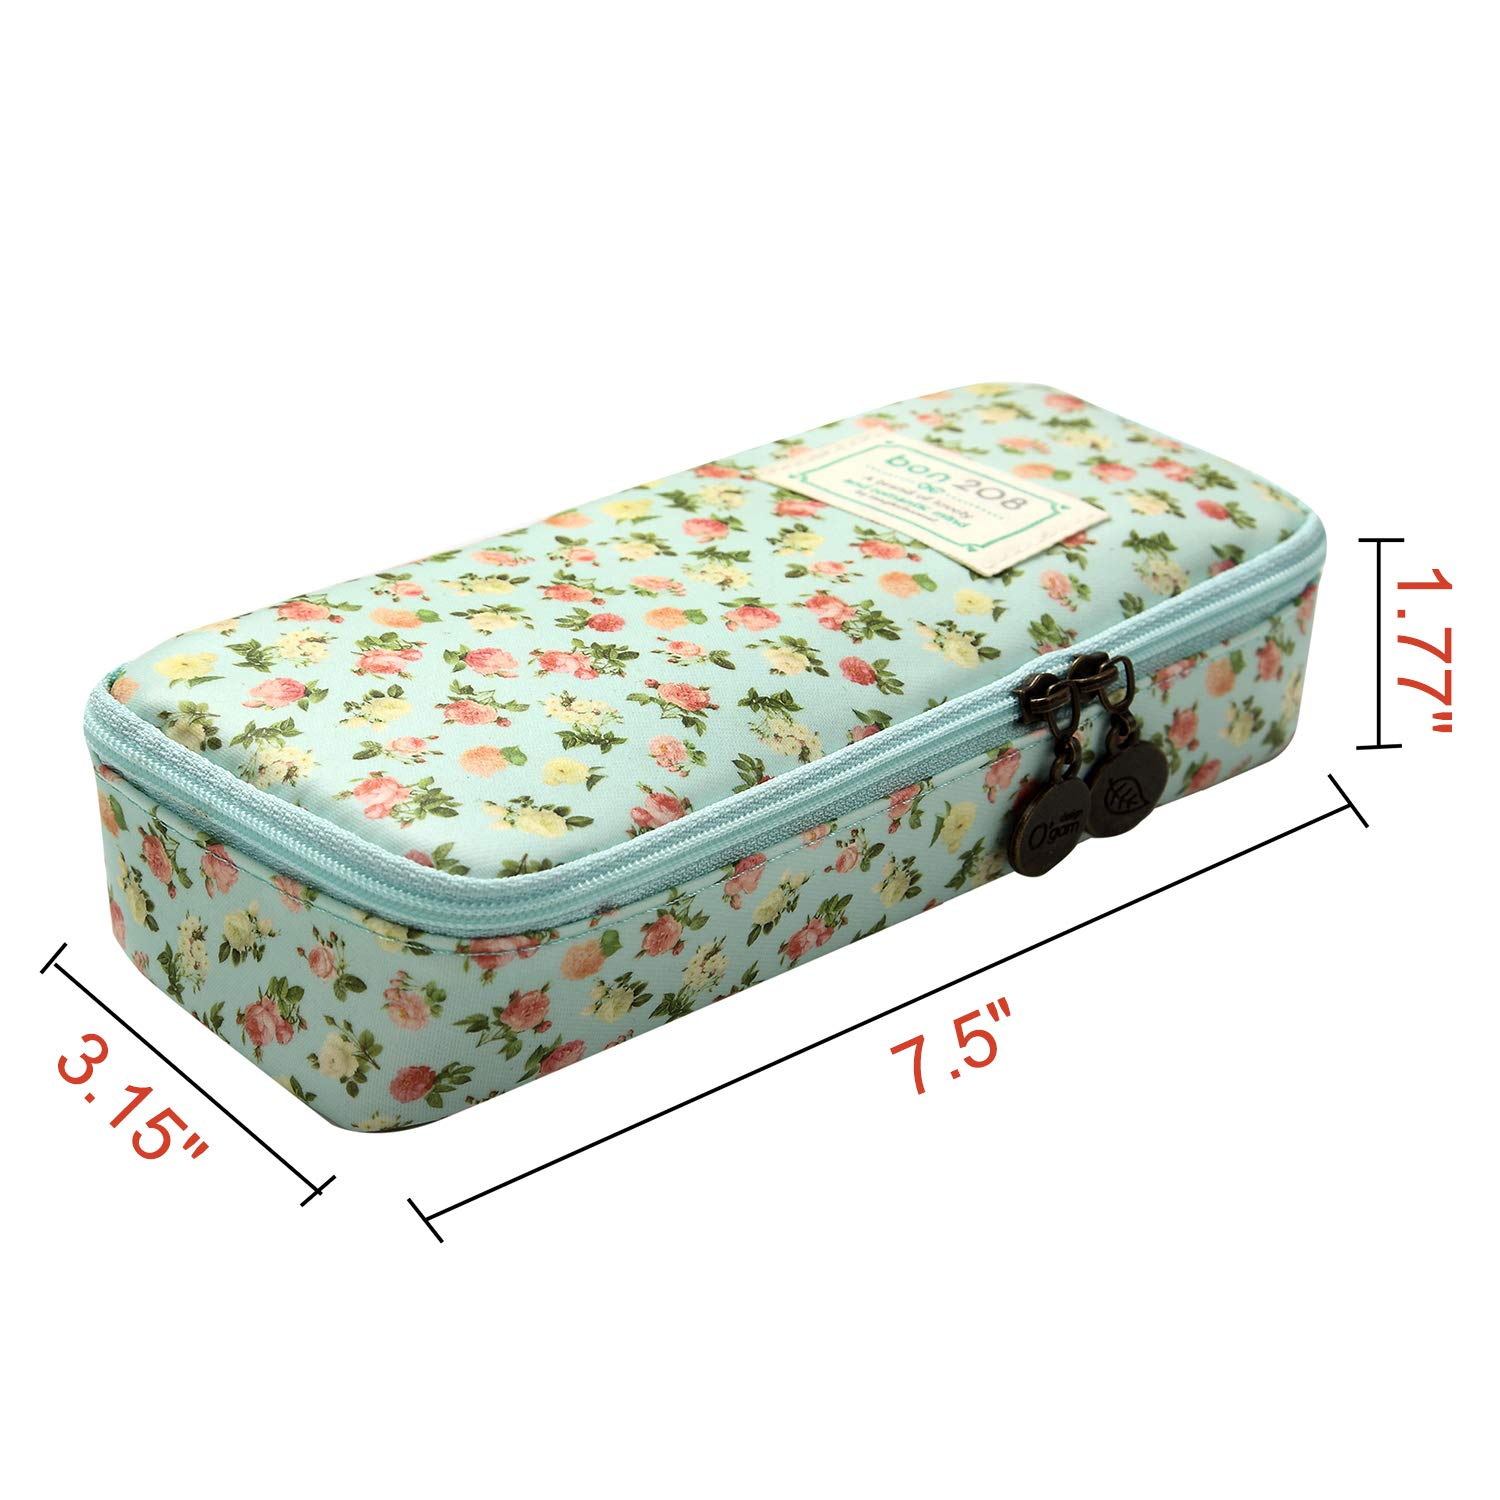 D.Sword Cute Pencil Case for Kid,Big Capacity Pen Bag Student Office Stationery Organizer for College Middle School Grade School,Floral Pencil Pouch Cosmetic Bag Makeup Bag(Light Green with Flowers) by Dragon Sword (Image #2)